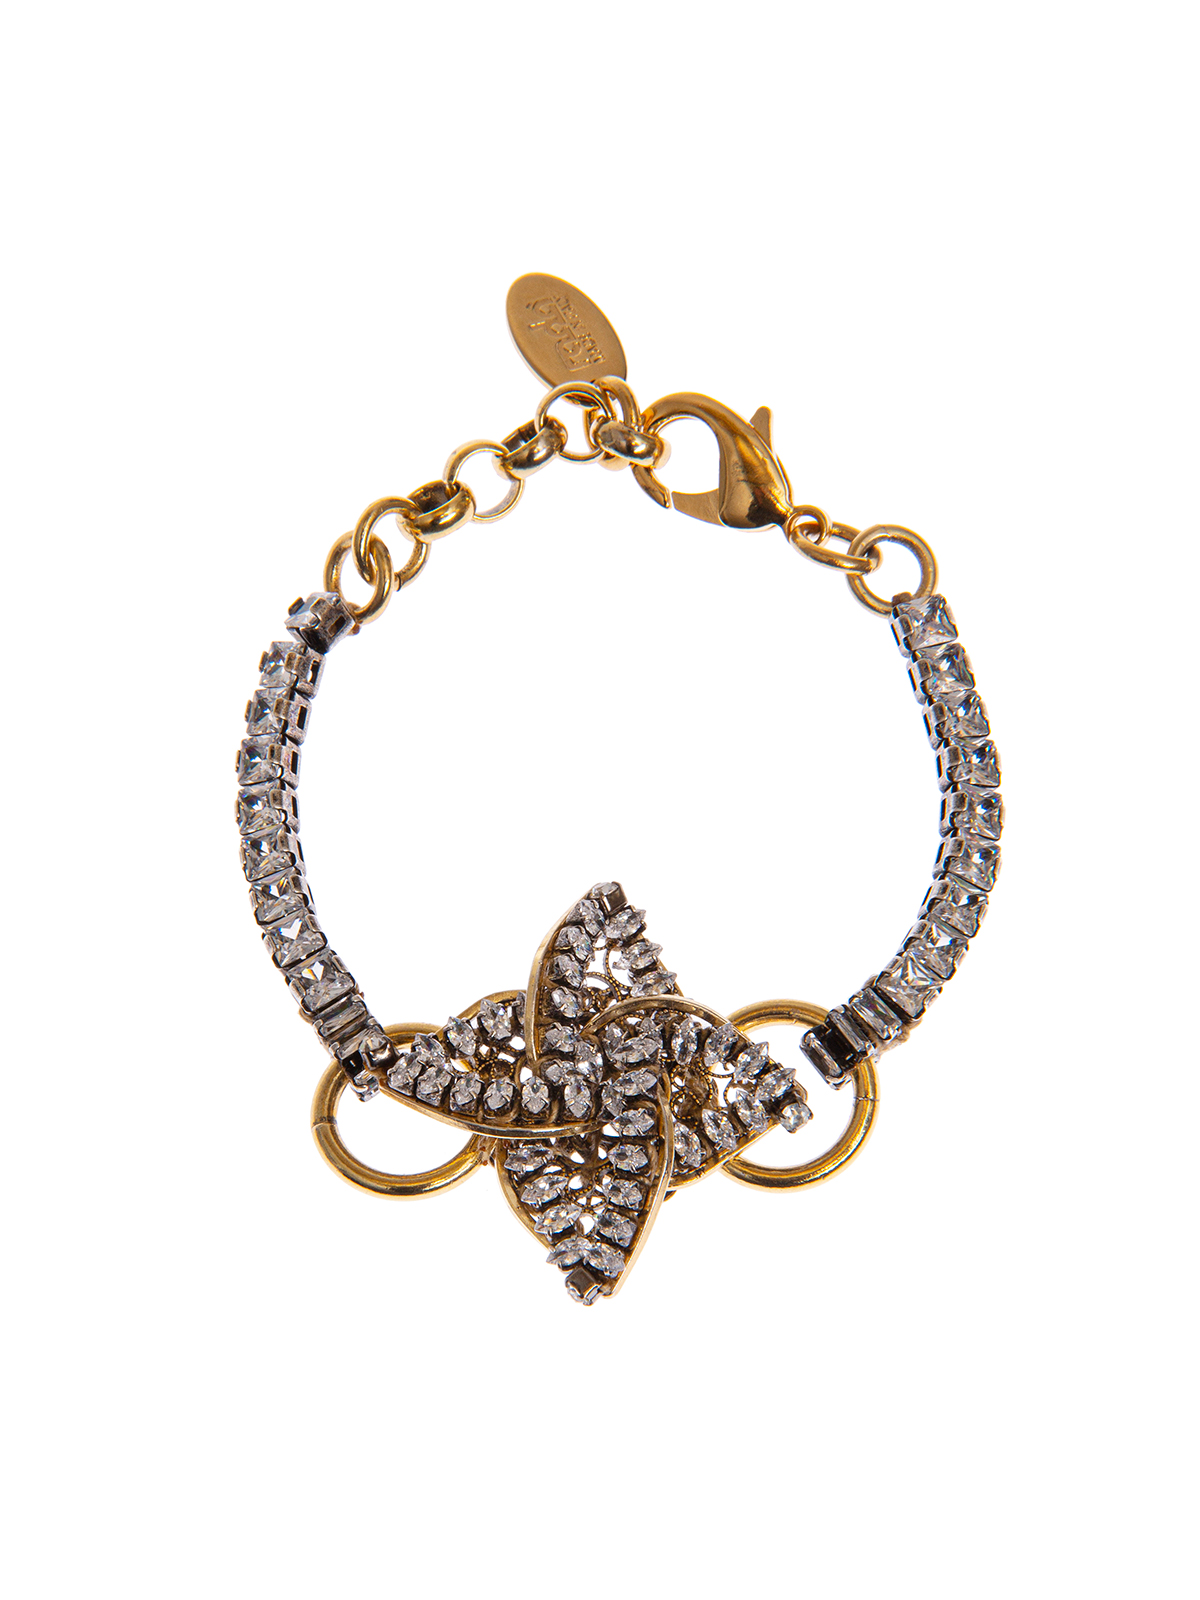 Crystal bracelet with  jewel helix-shaped decoration embroidered with stones